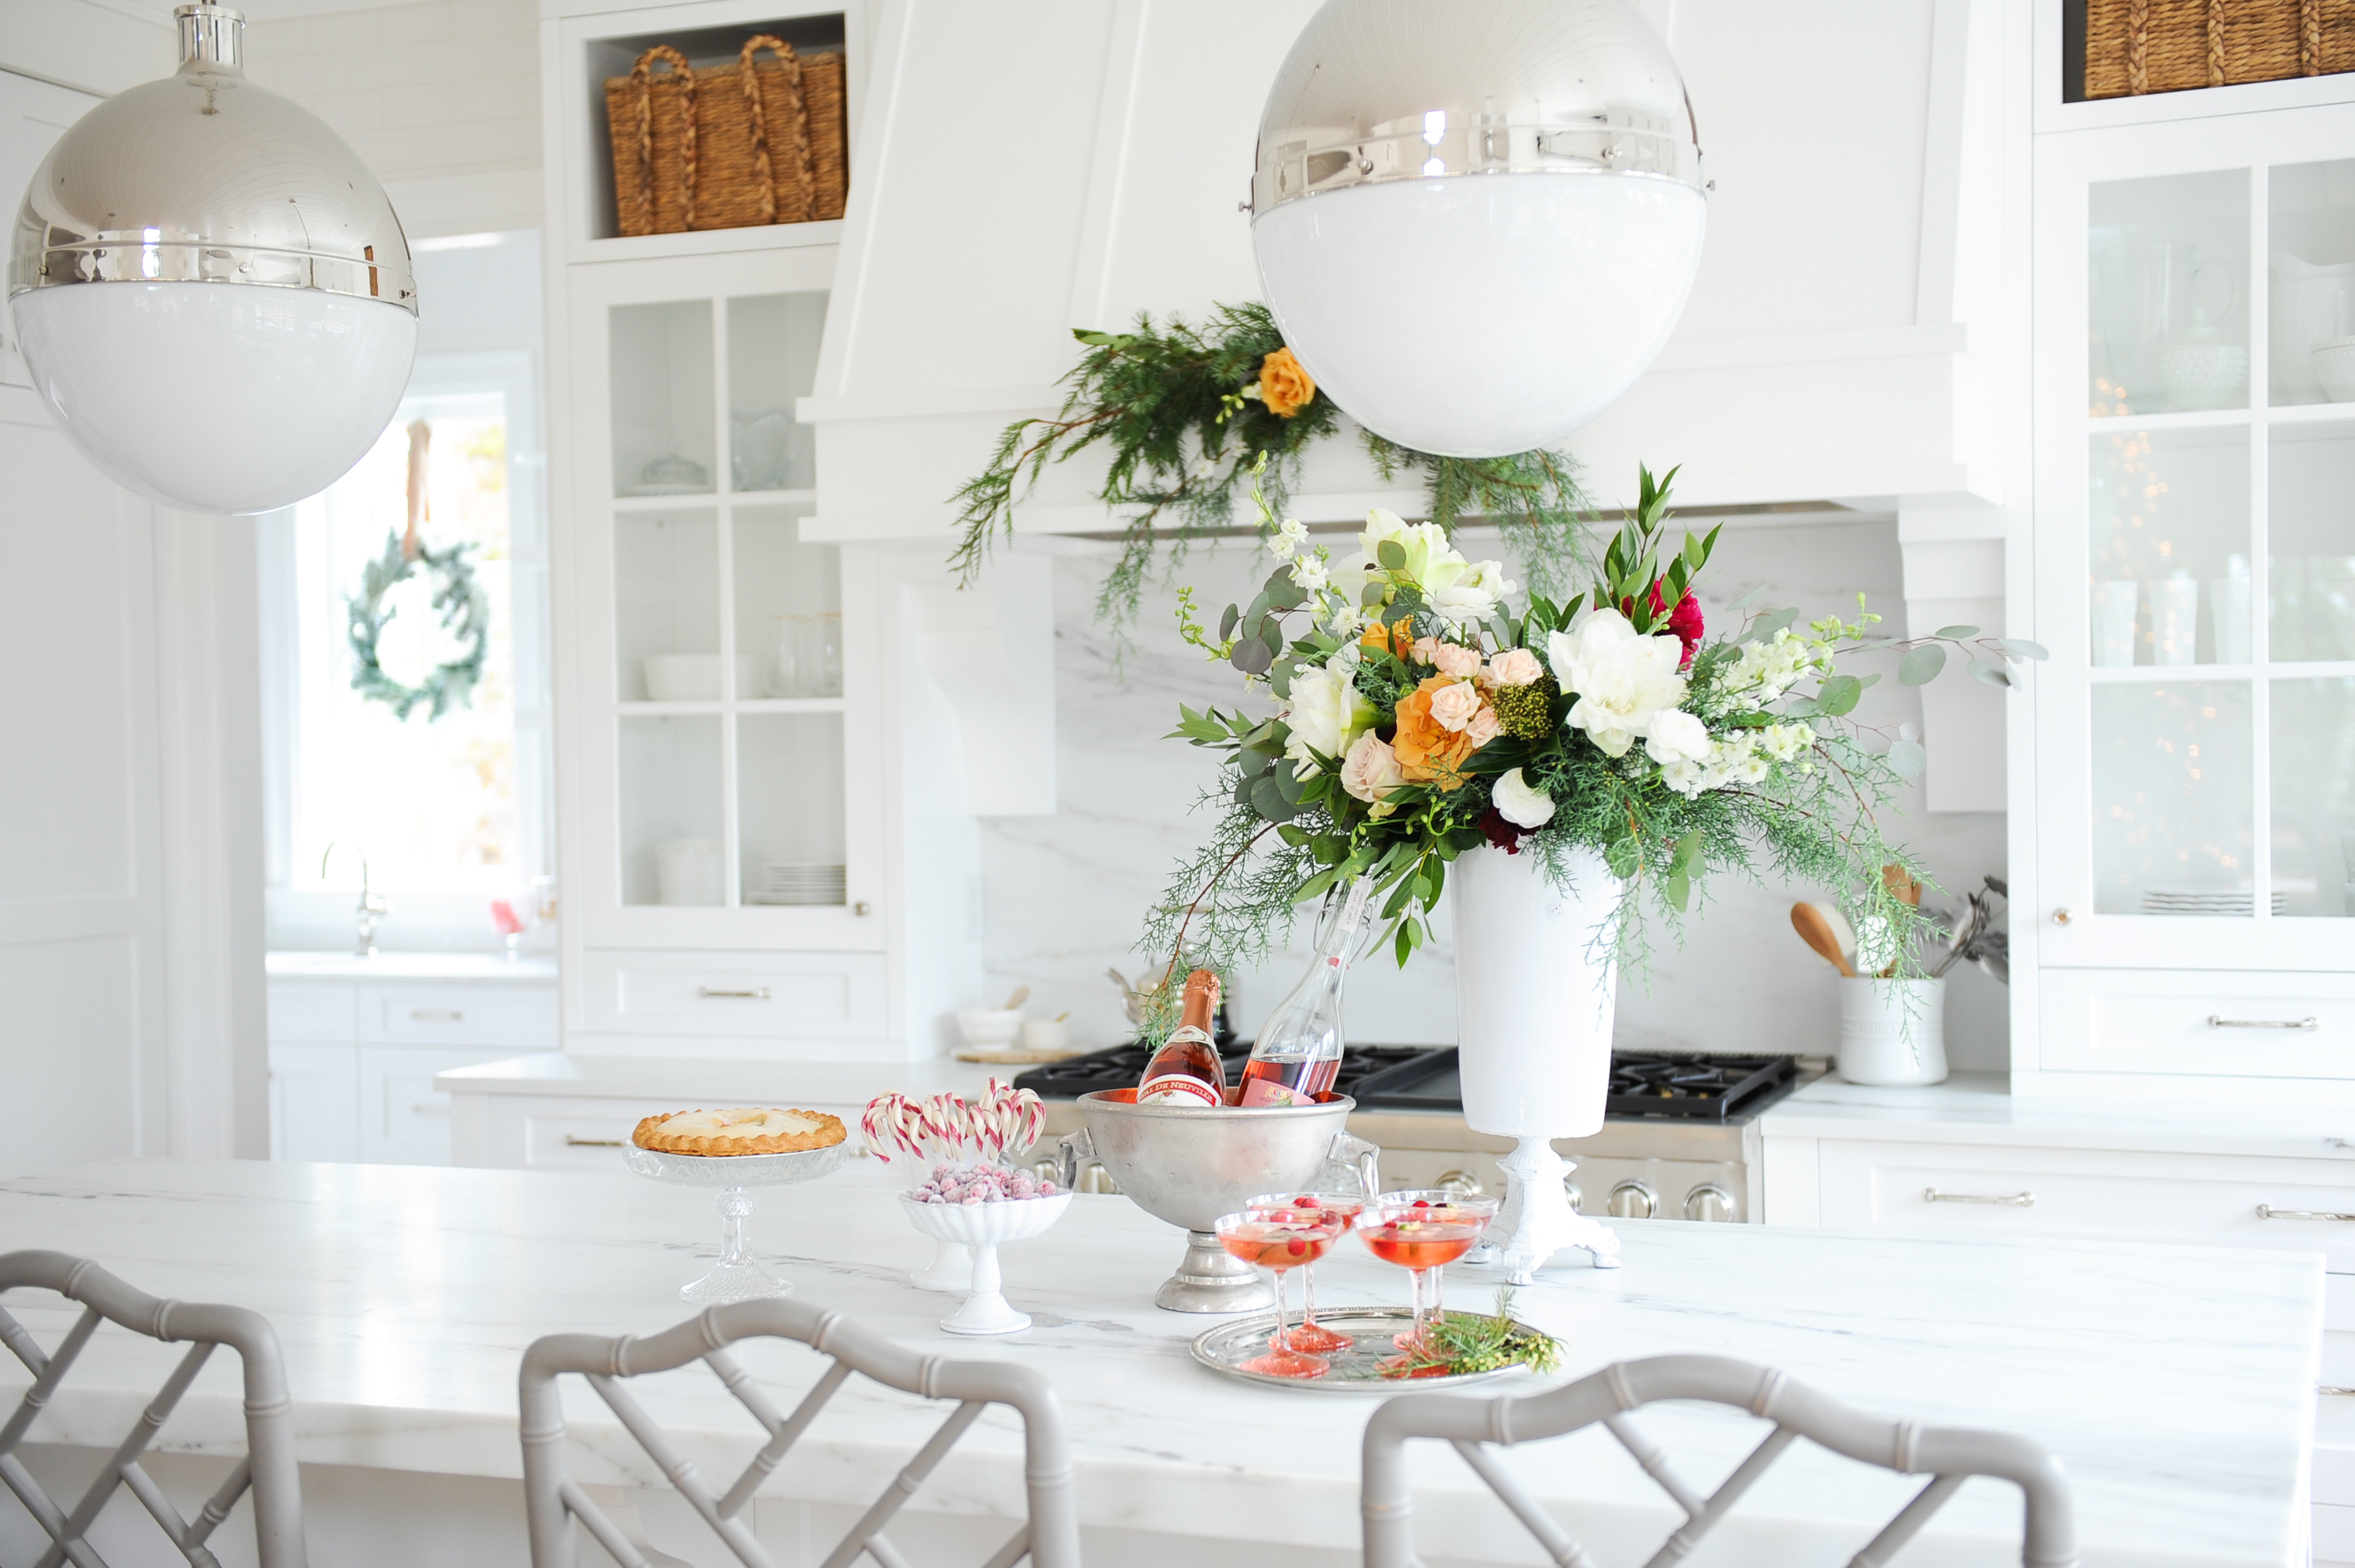 Christmas in a white kitchen with marble counters